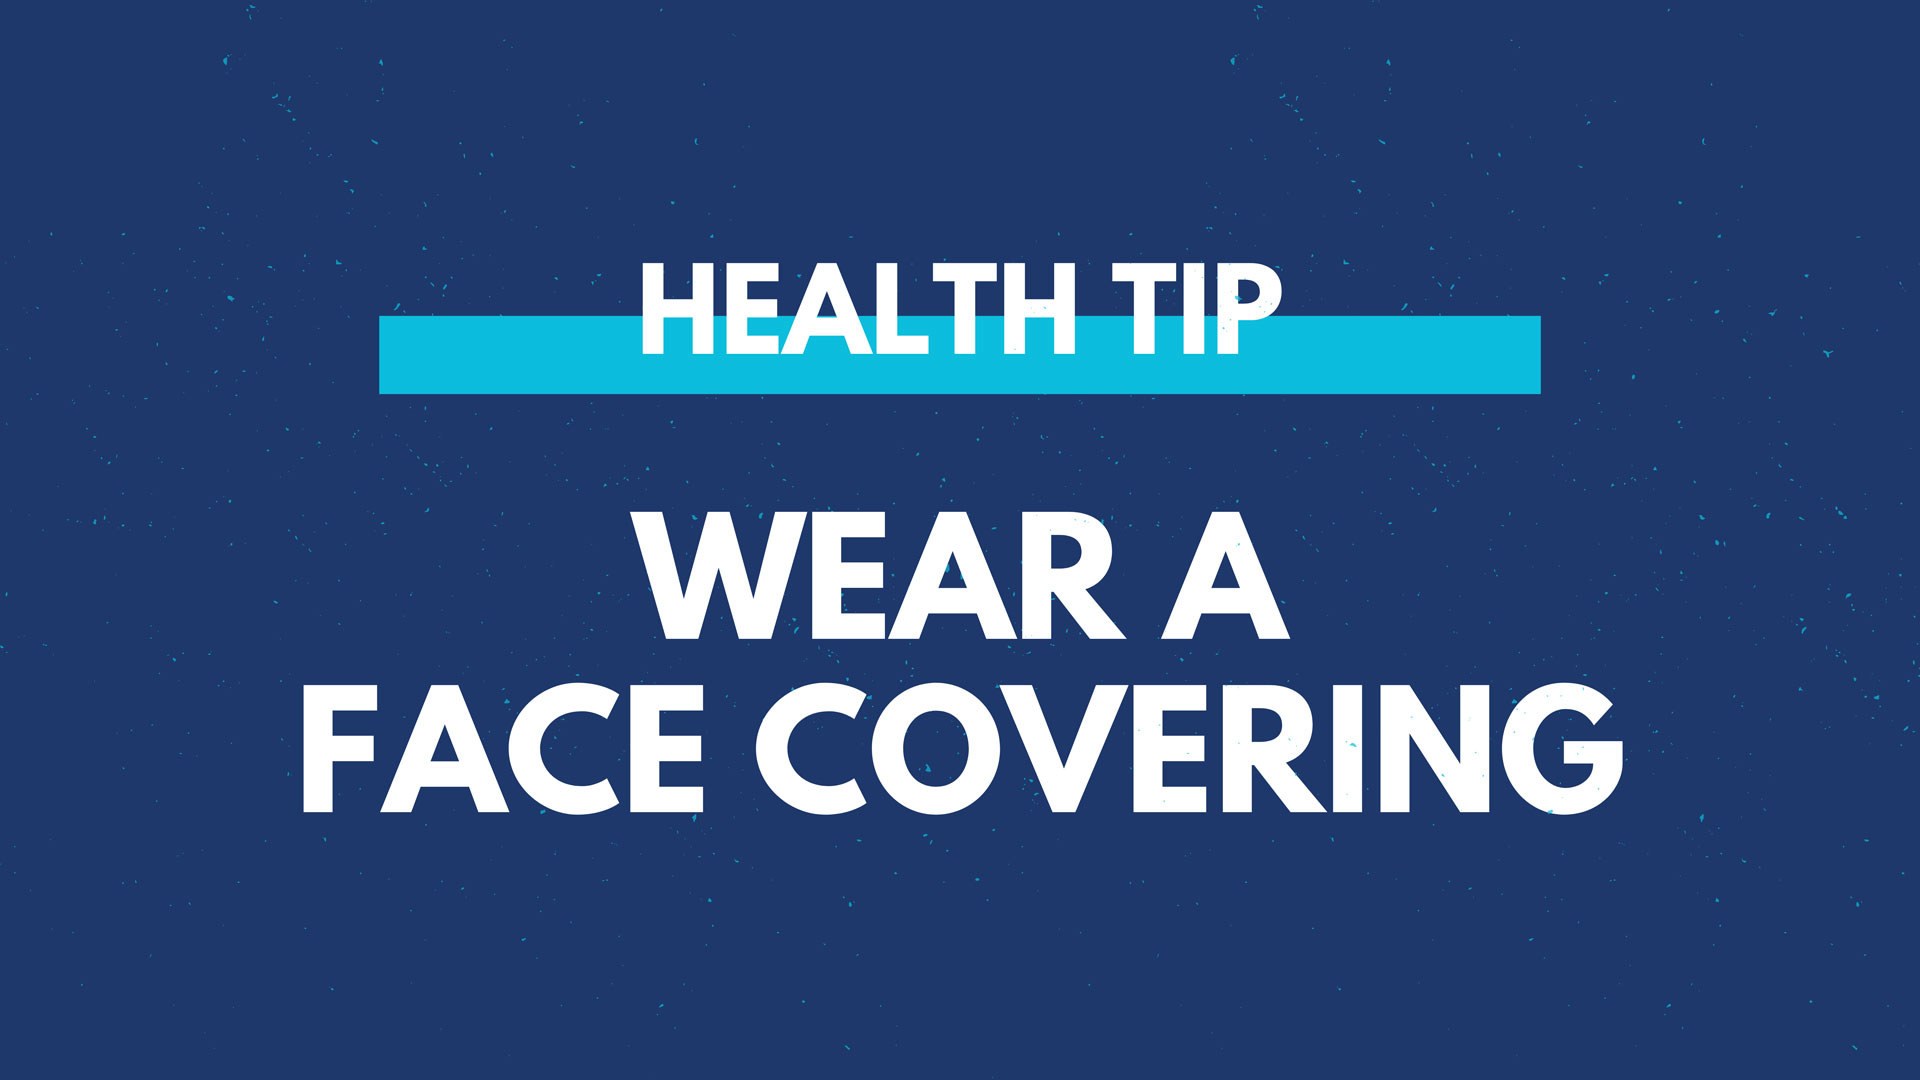 Health Tip - Wear A Face Covering